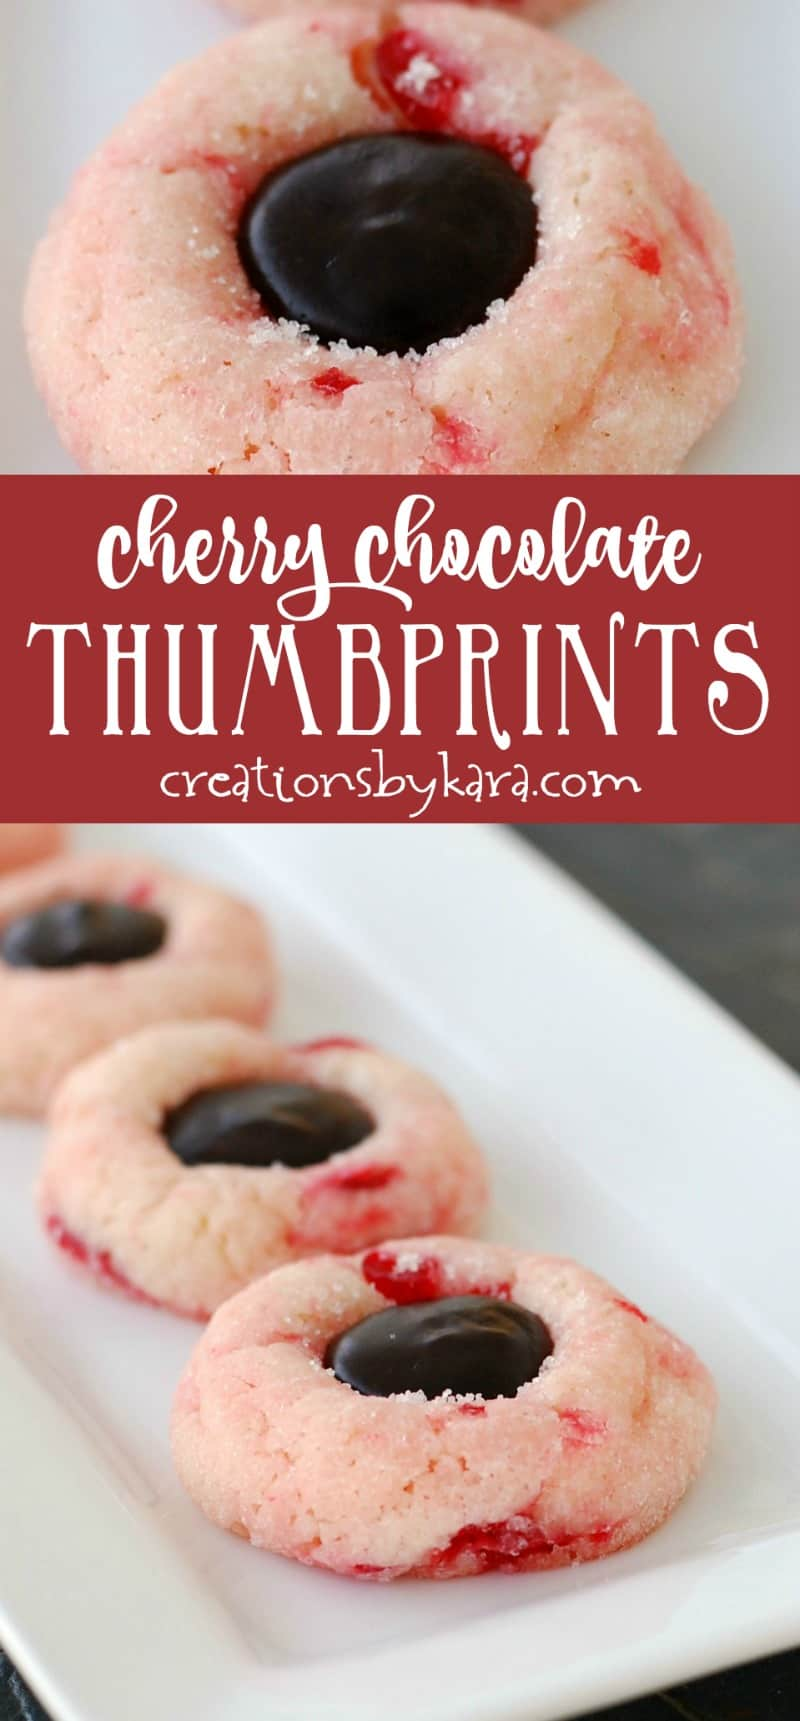 Cherry Chocolate Thumbprint Cookies - a tender shortbread cookie loaded with juicy cherries, filled with a puddle of fudge. #christmascookie #holidaybaking #cookies